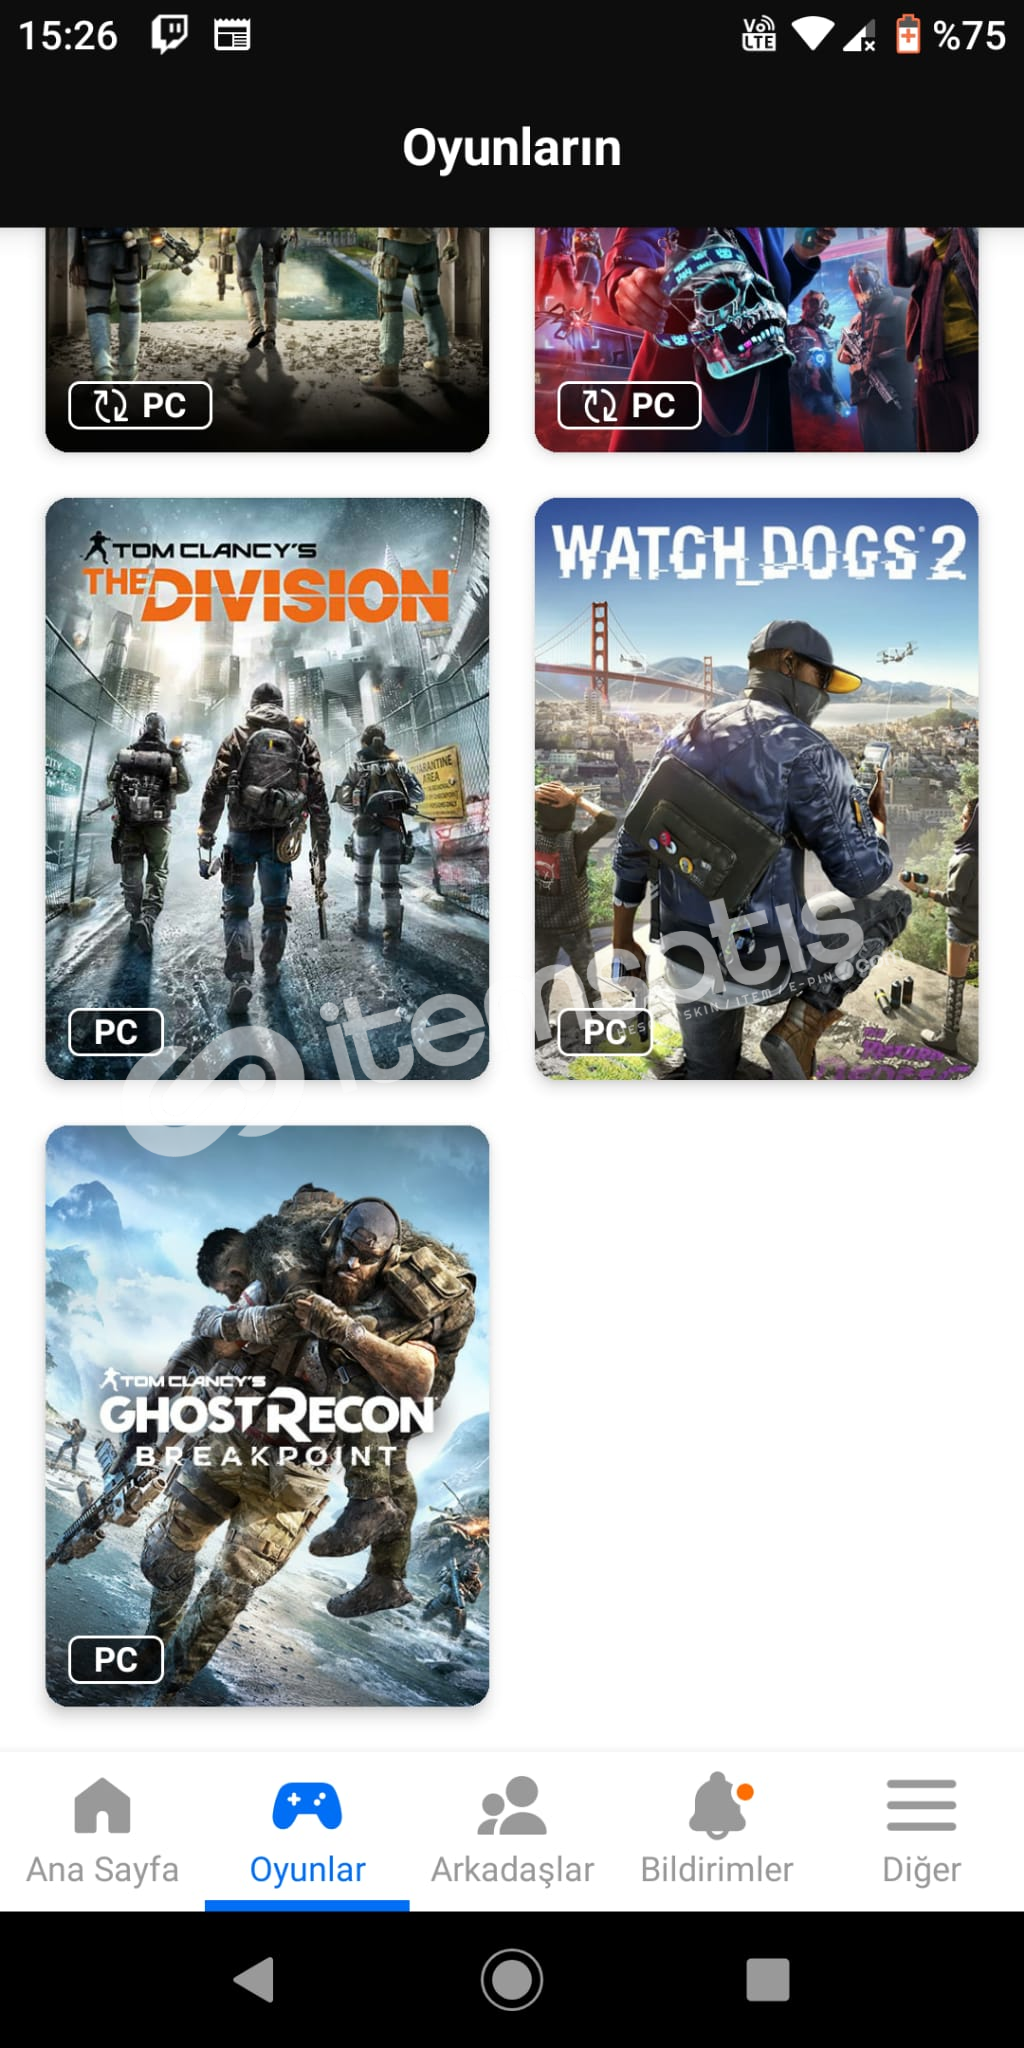 assassin's creed valhalla division 2 watch dogs legion